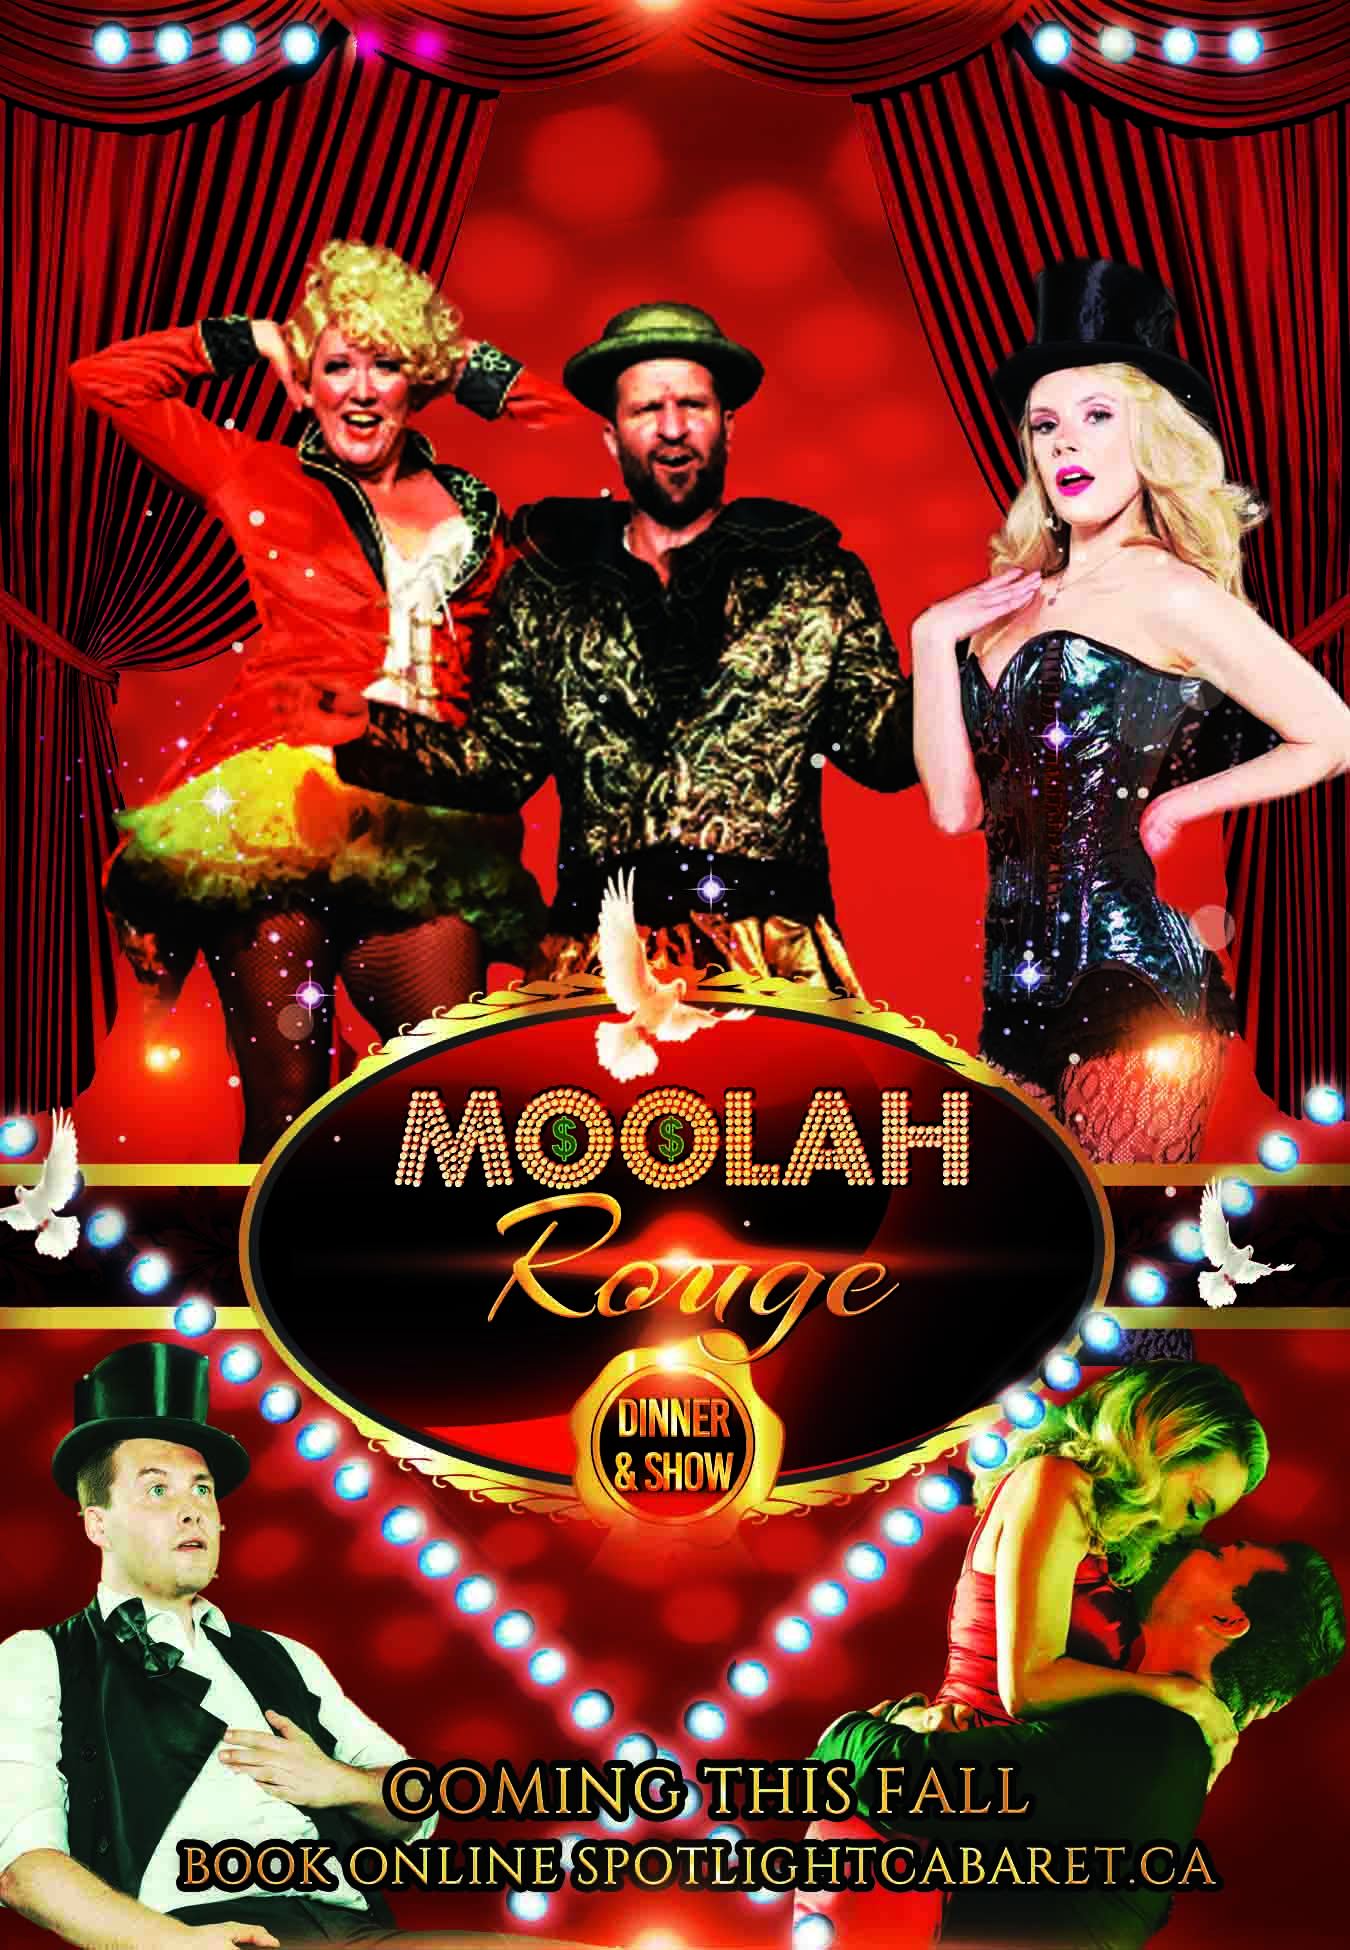 Moolah Rouge - Dinner & Show Sunday Special